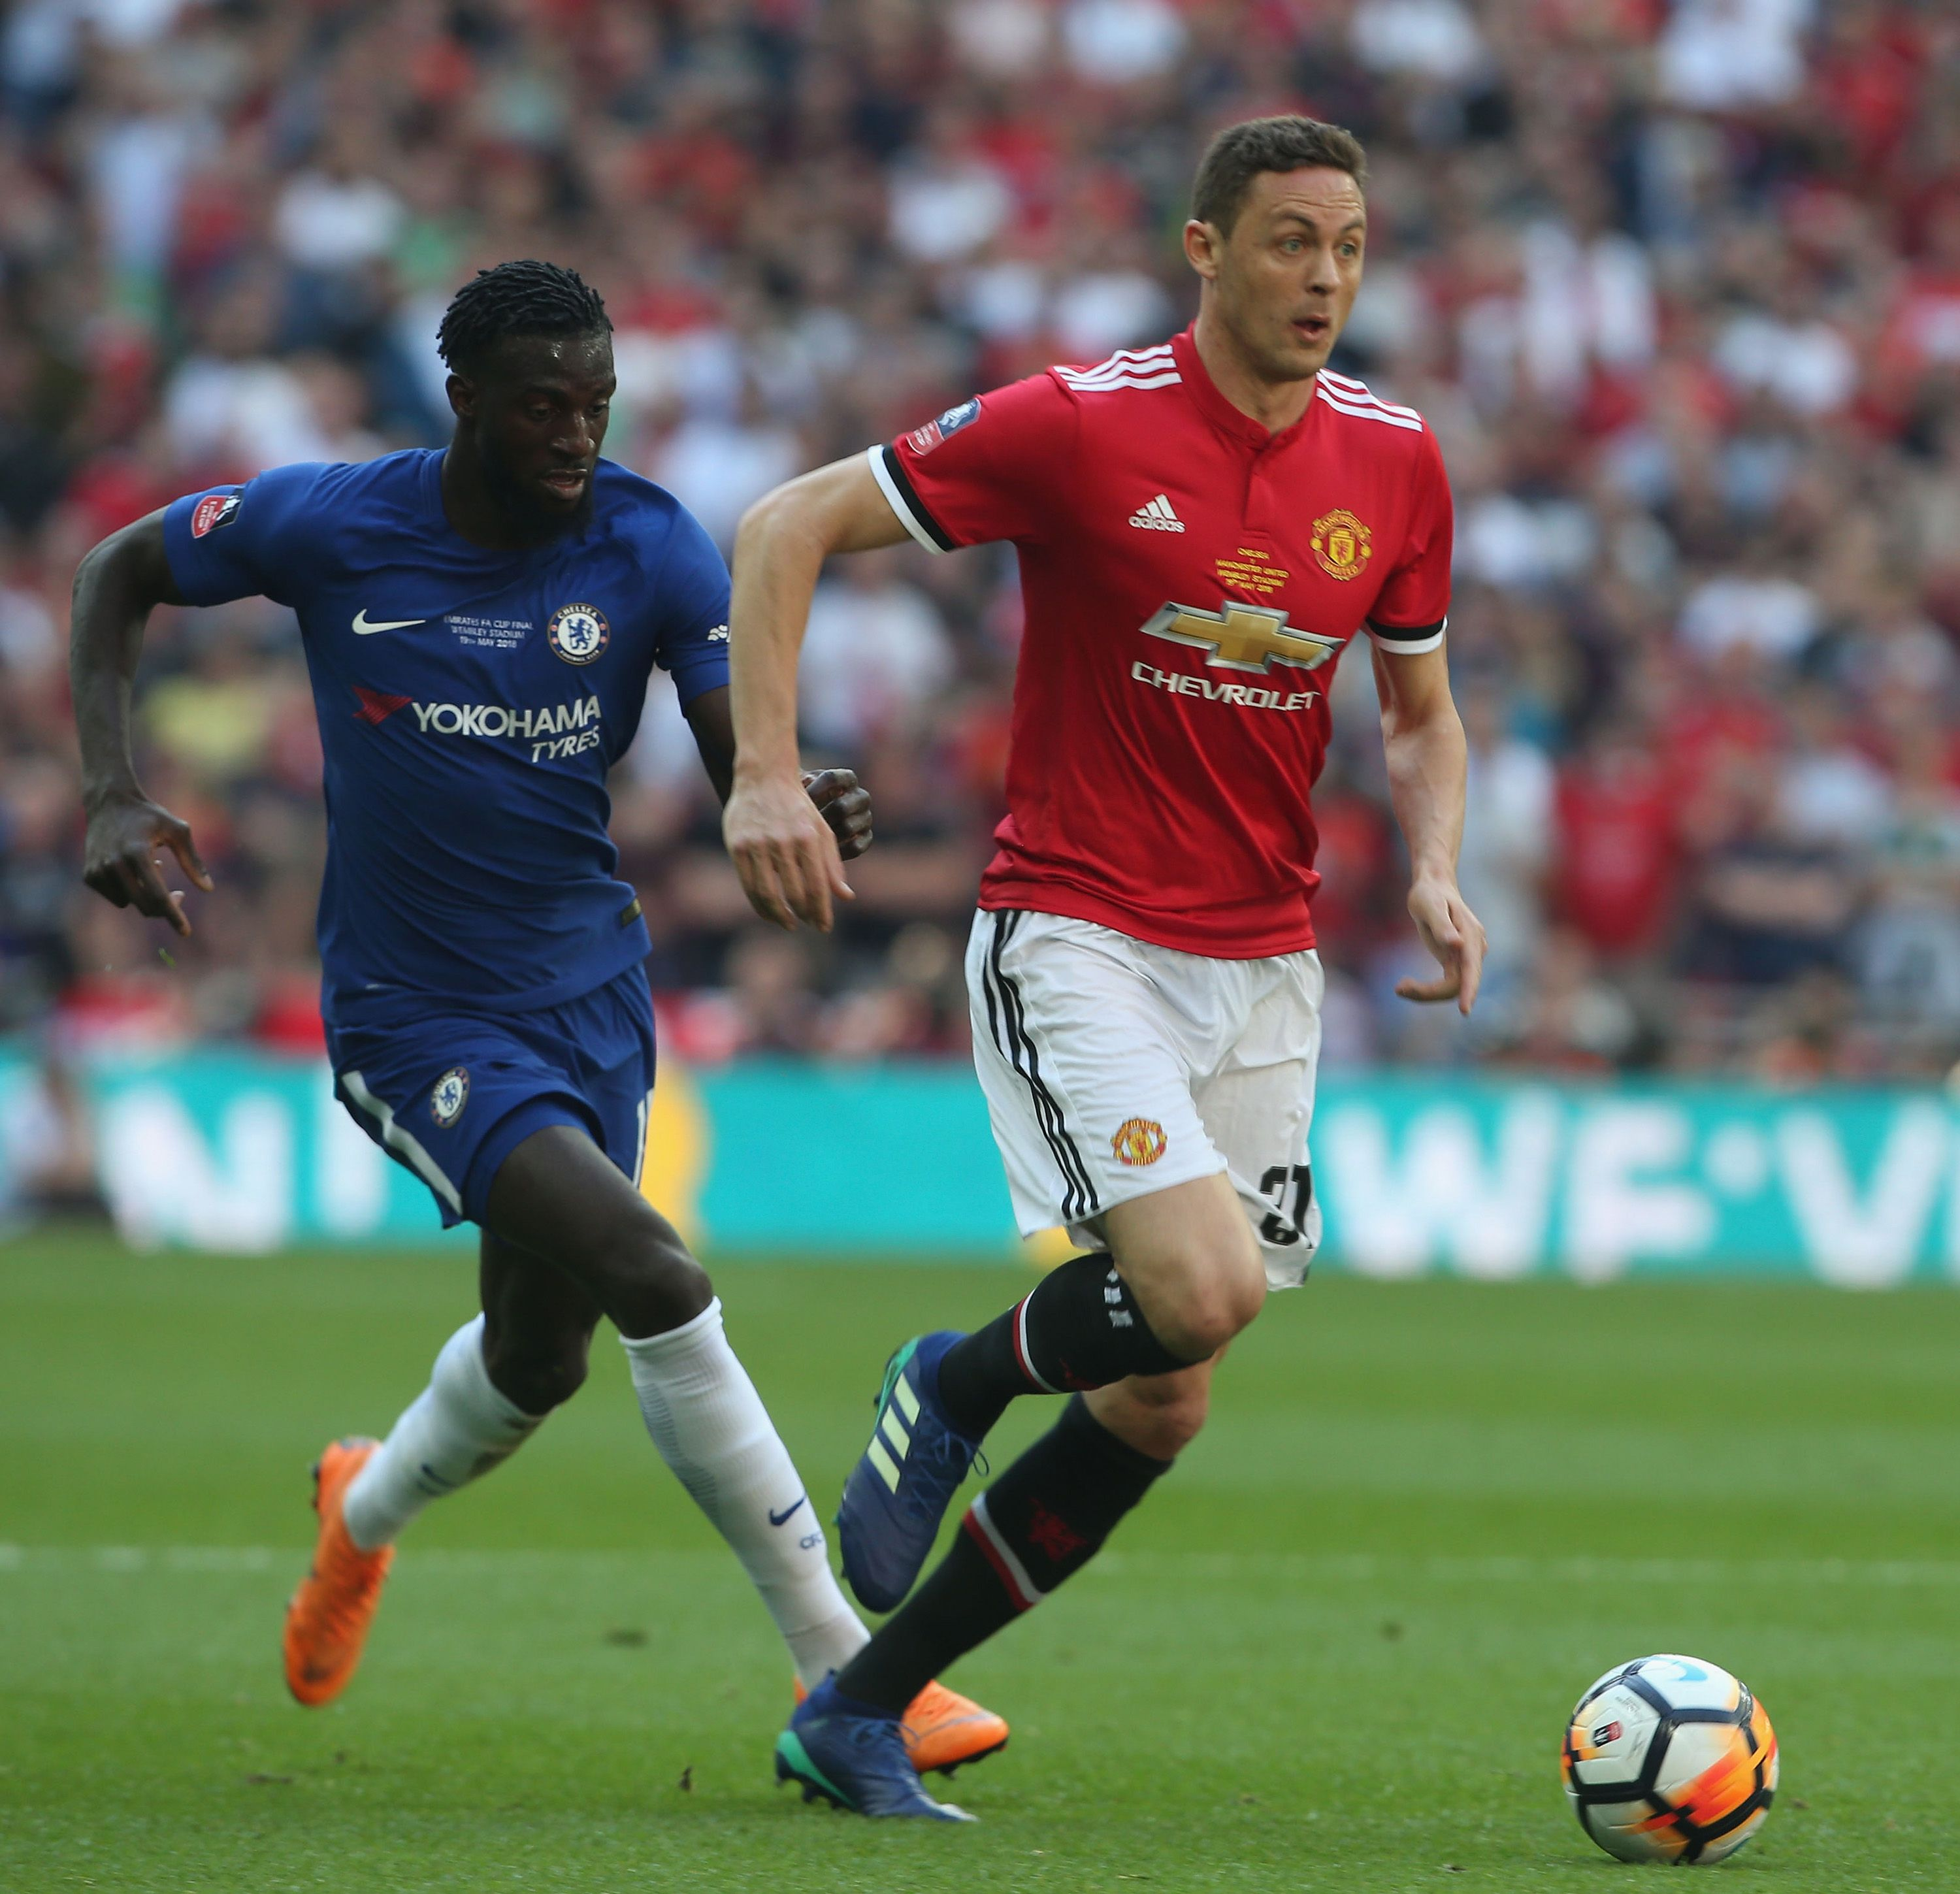 Nemanja Matic Admits There Will Be An Increased Expectation For Man Utd To Land A Trophy Next Season Following The Defeat To Ch Man Utd News Nemanja Matic Man